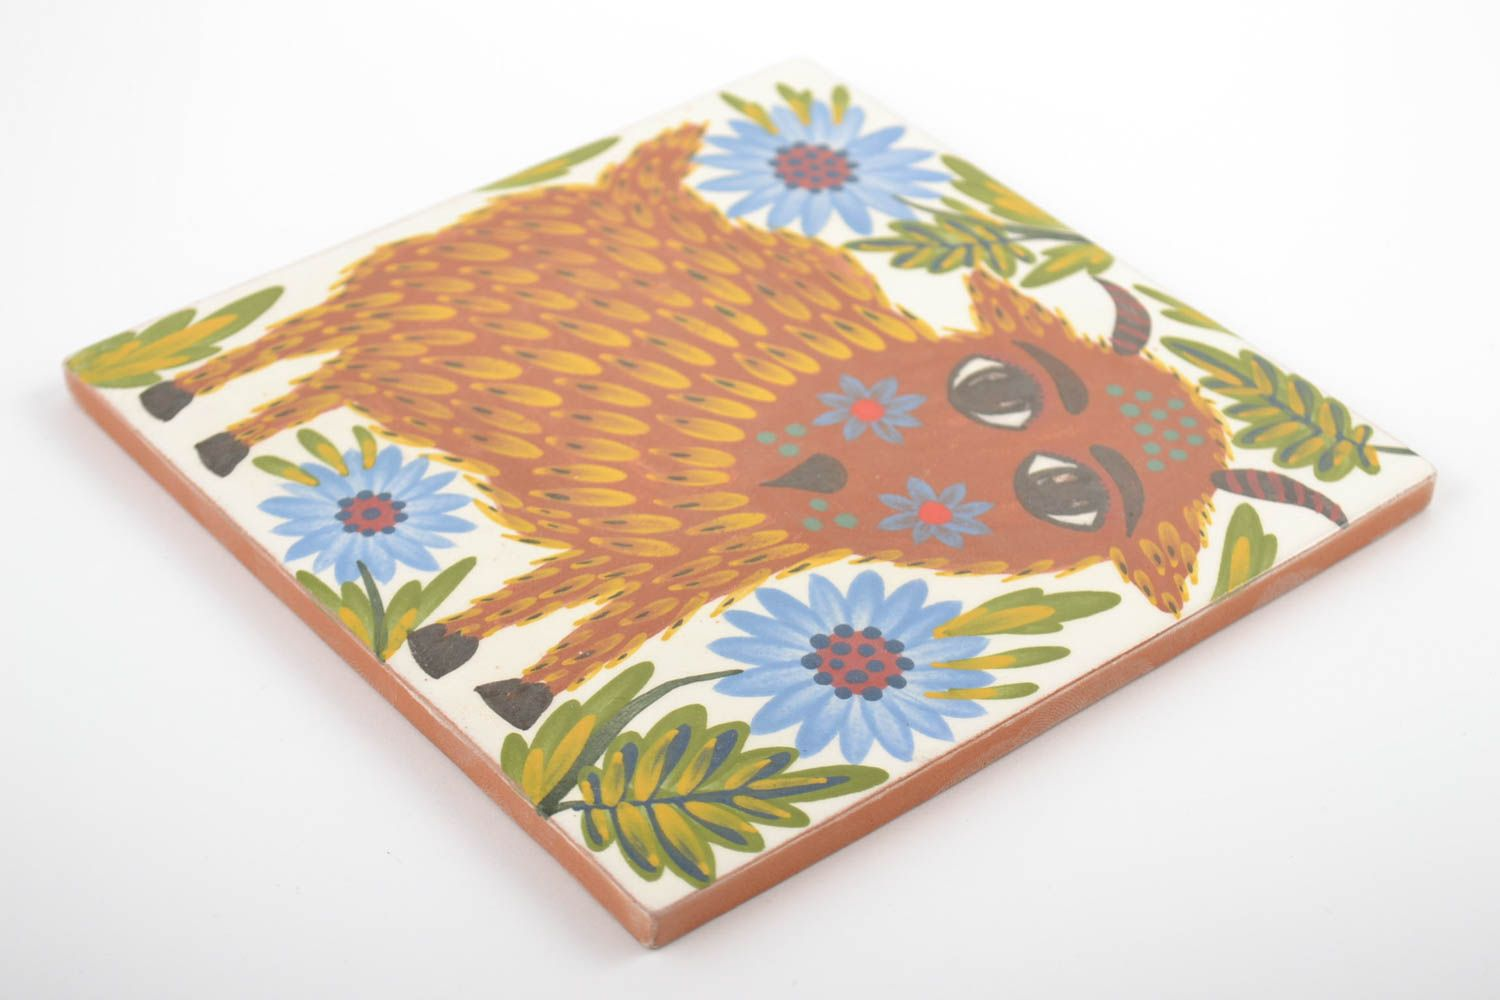 decorative handmade tiles Handmade decorative painted tile made of clay for children's room wall panel - MADEheart.com